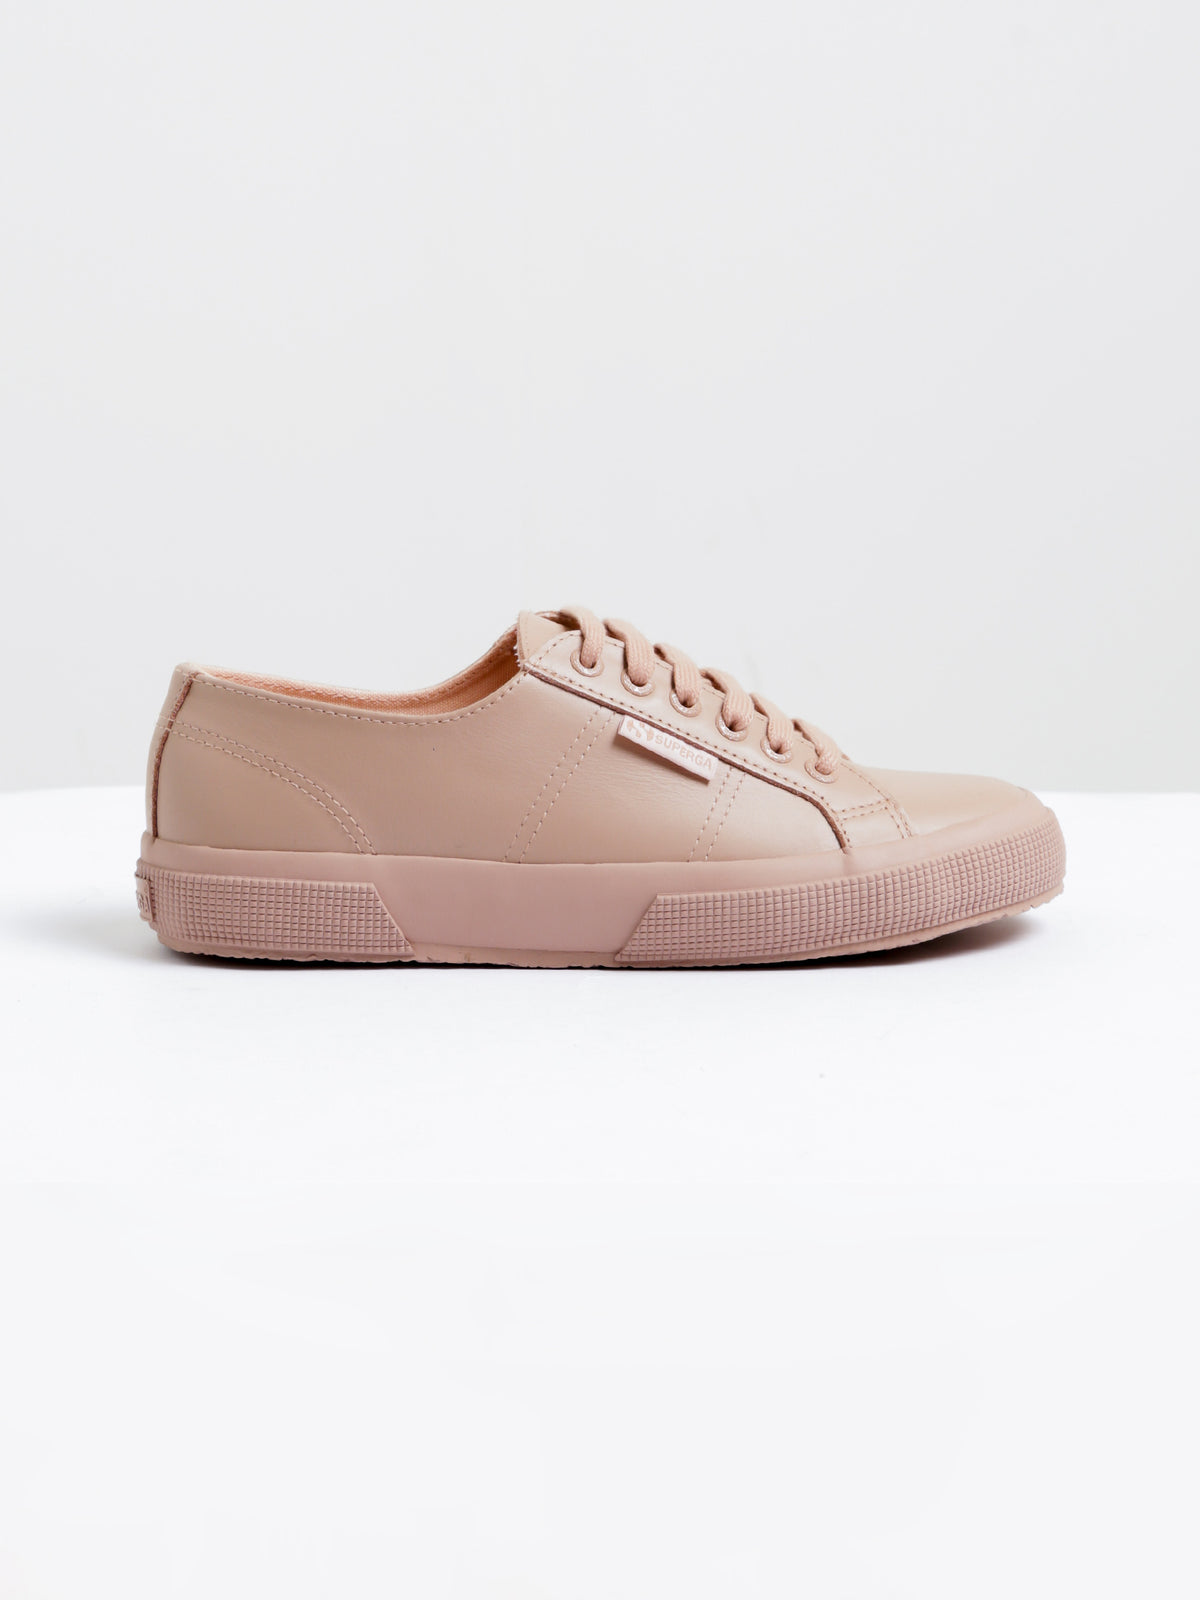 Womens 2750 FGLU Sneakers in Pink Leather